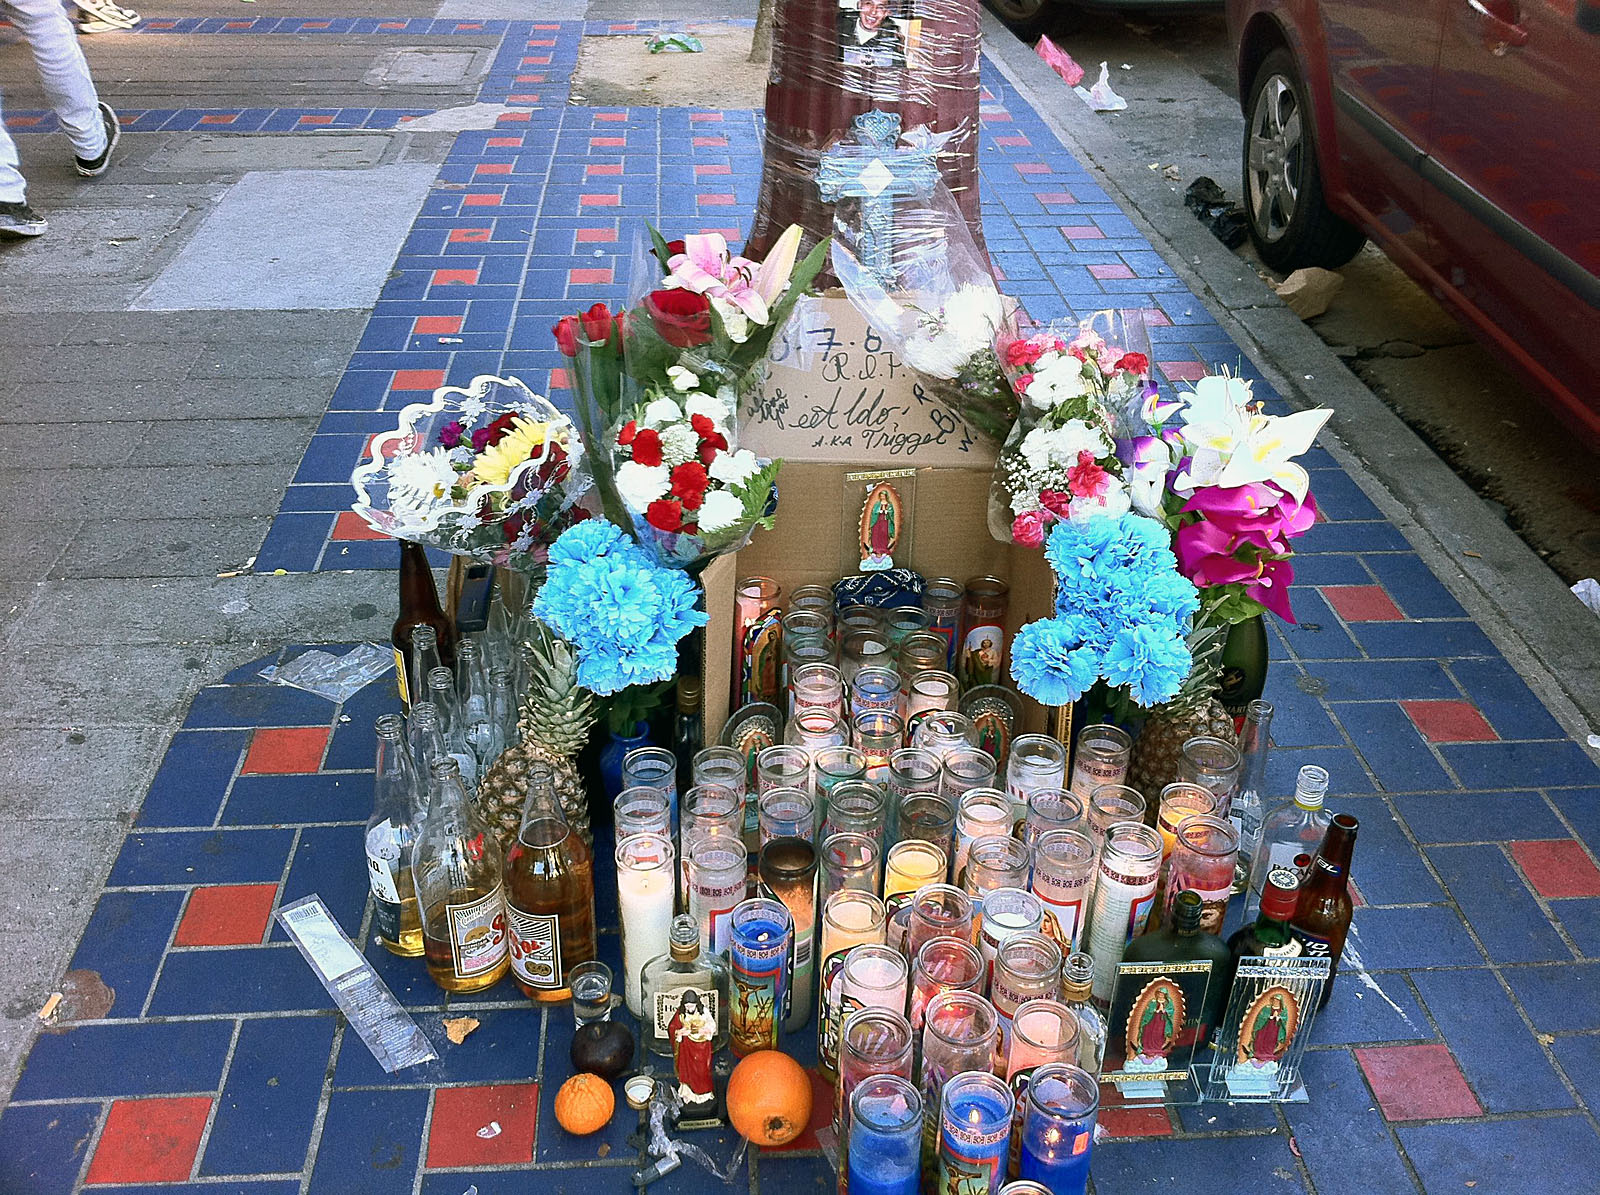 Stretch of Mission St. Where Saturday's Fatal Shooting Took Place Troubled for Decades